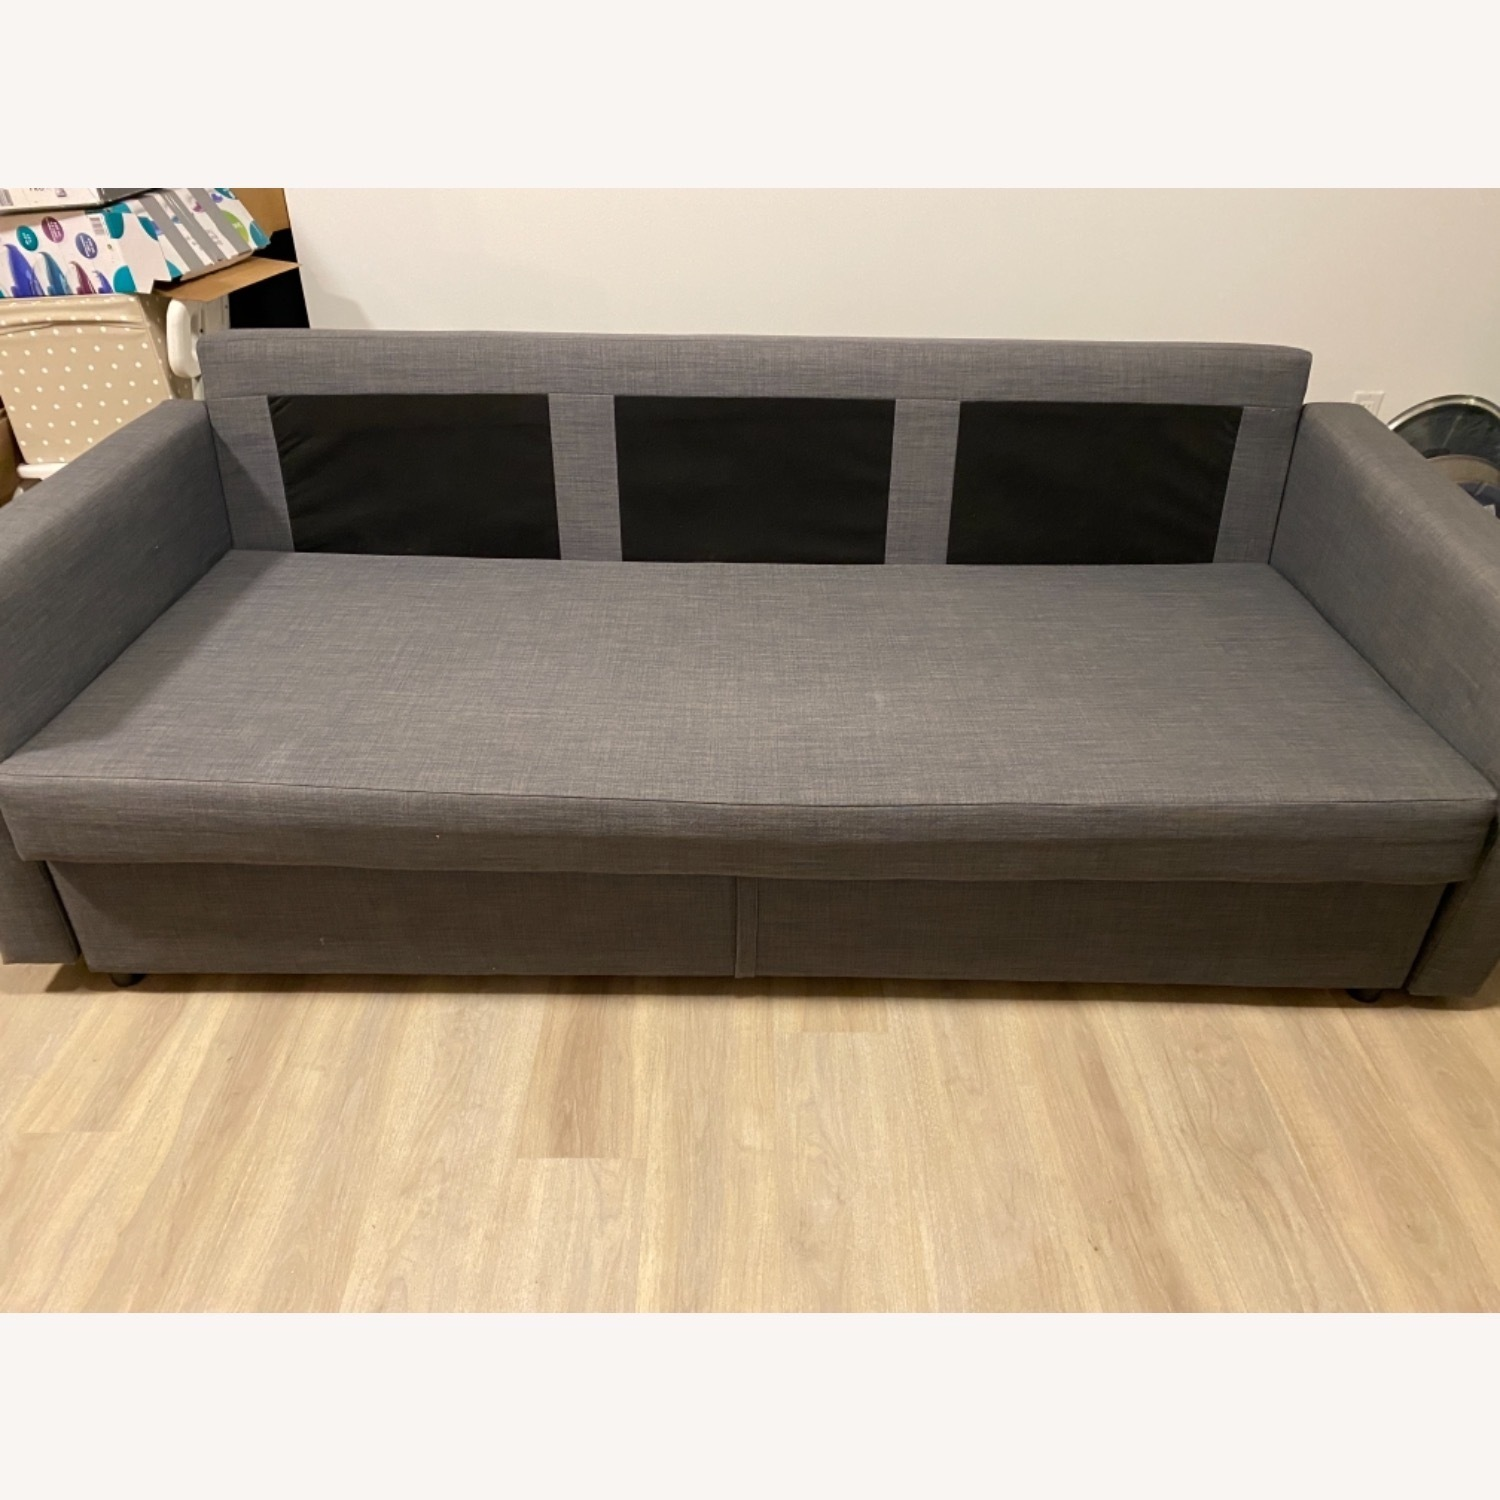 IKEA Dark Grey Sofa Bed - image-4